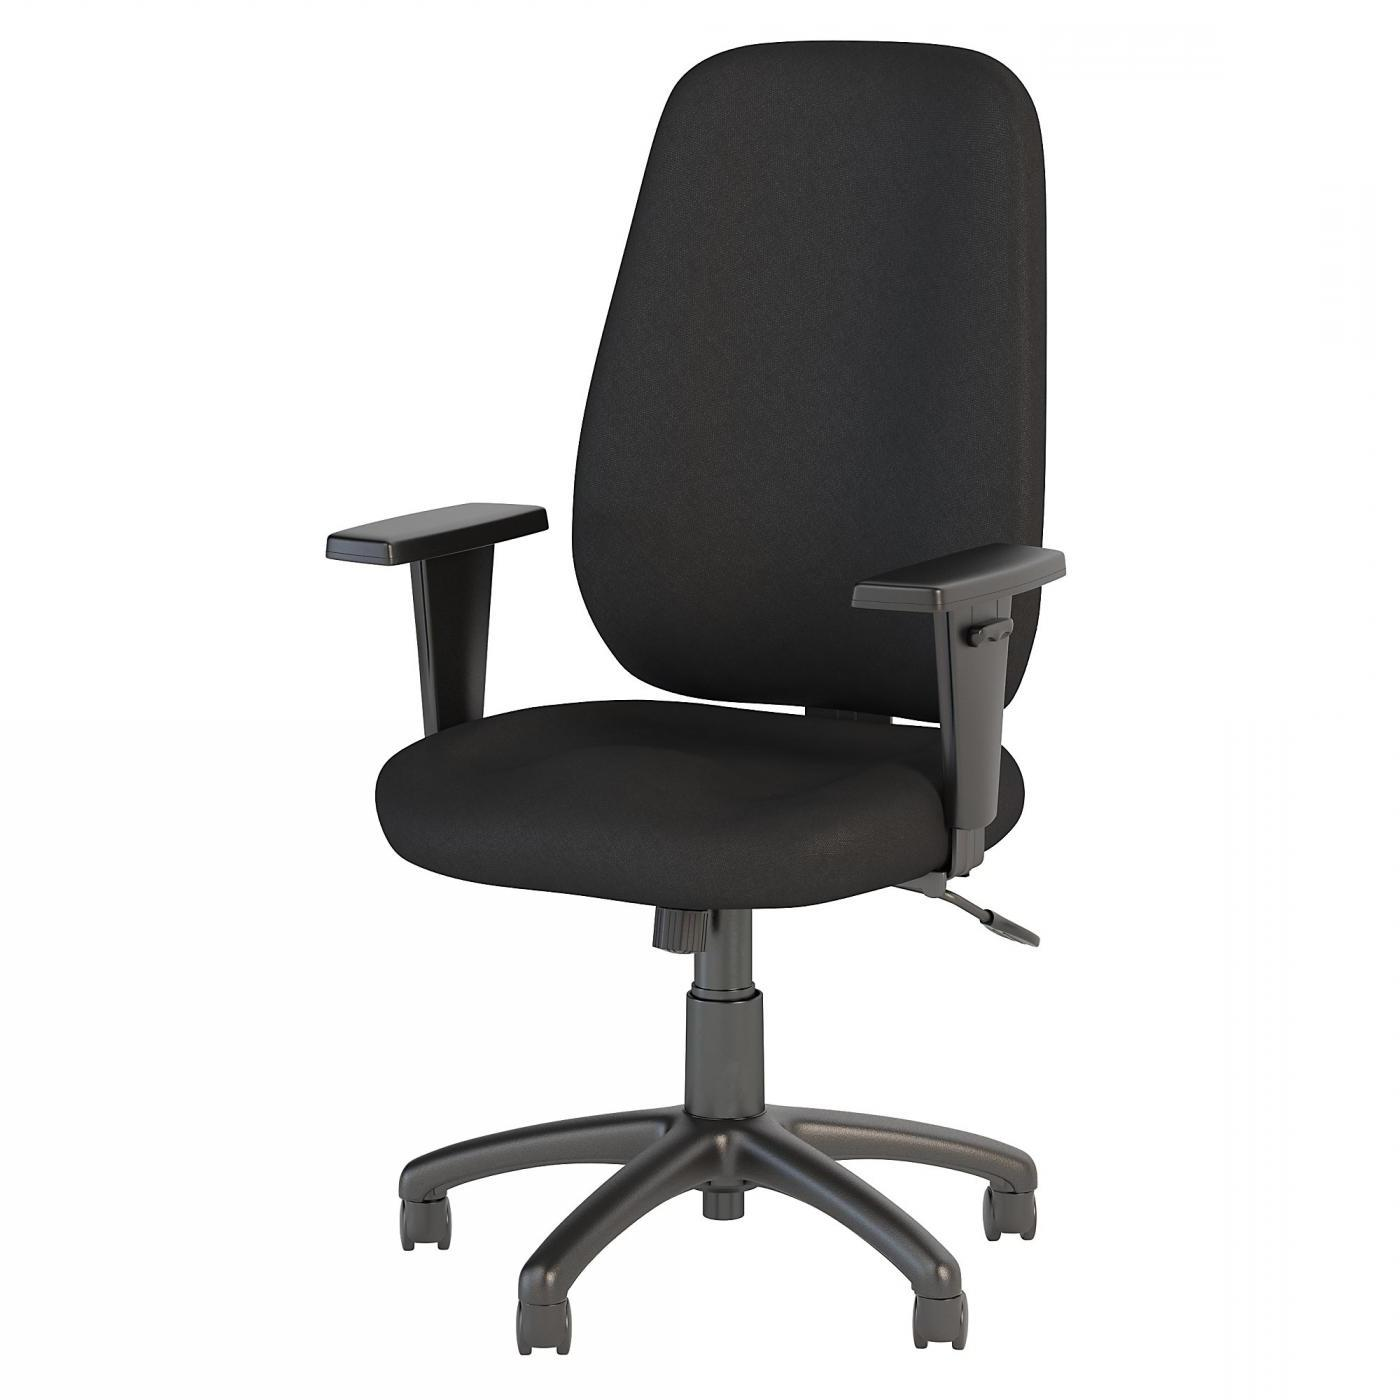 BUSH BUSINESS FURNITURE PROSPER HIGH BACK TASK CHAIR. FREE SHIPPING.  SALE DEDUCT 10% MORE ENTER '10percent' IN COUPON CODE BOX WHILE CHECKING OUT.